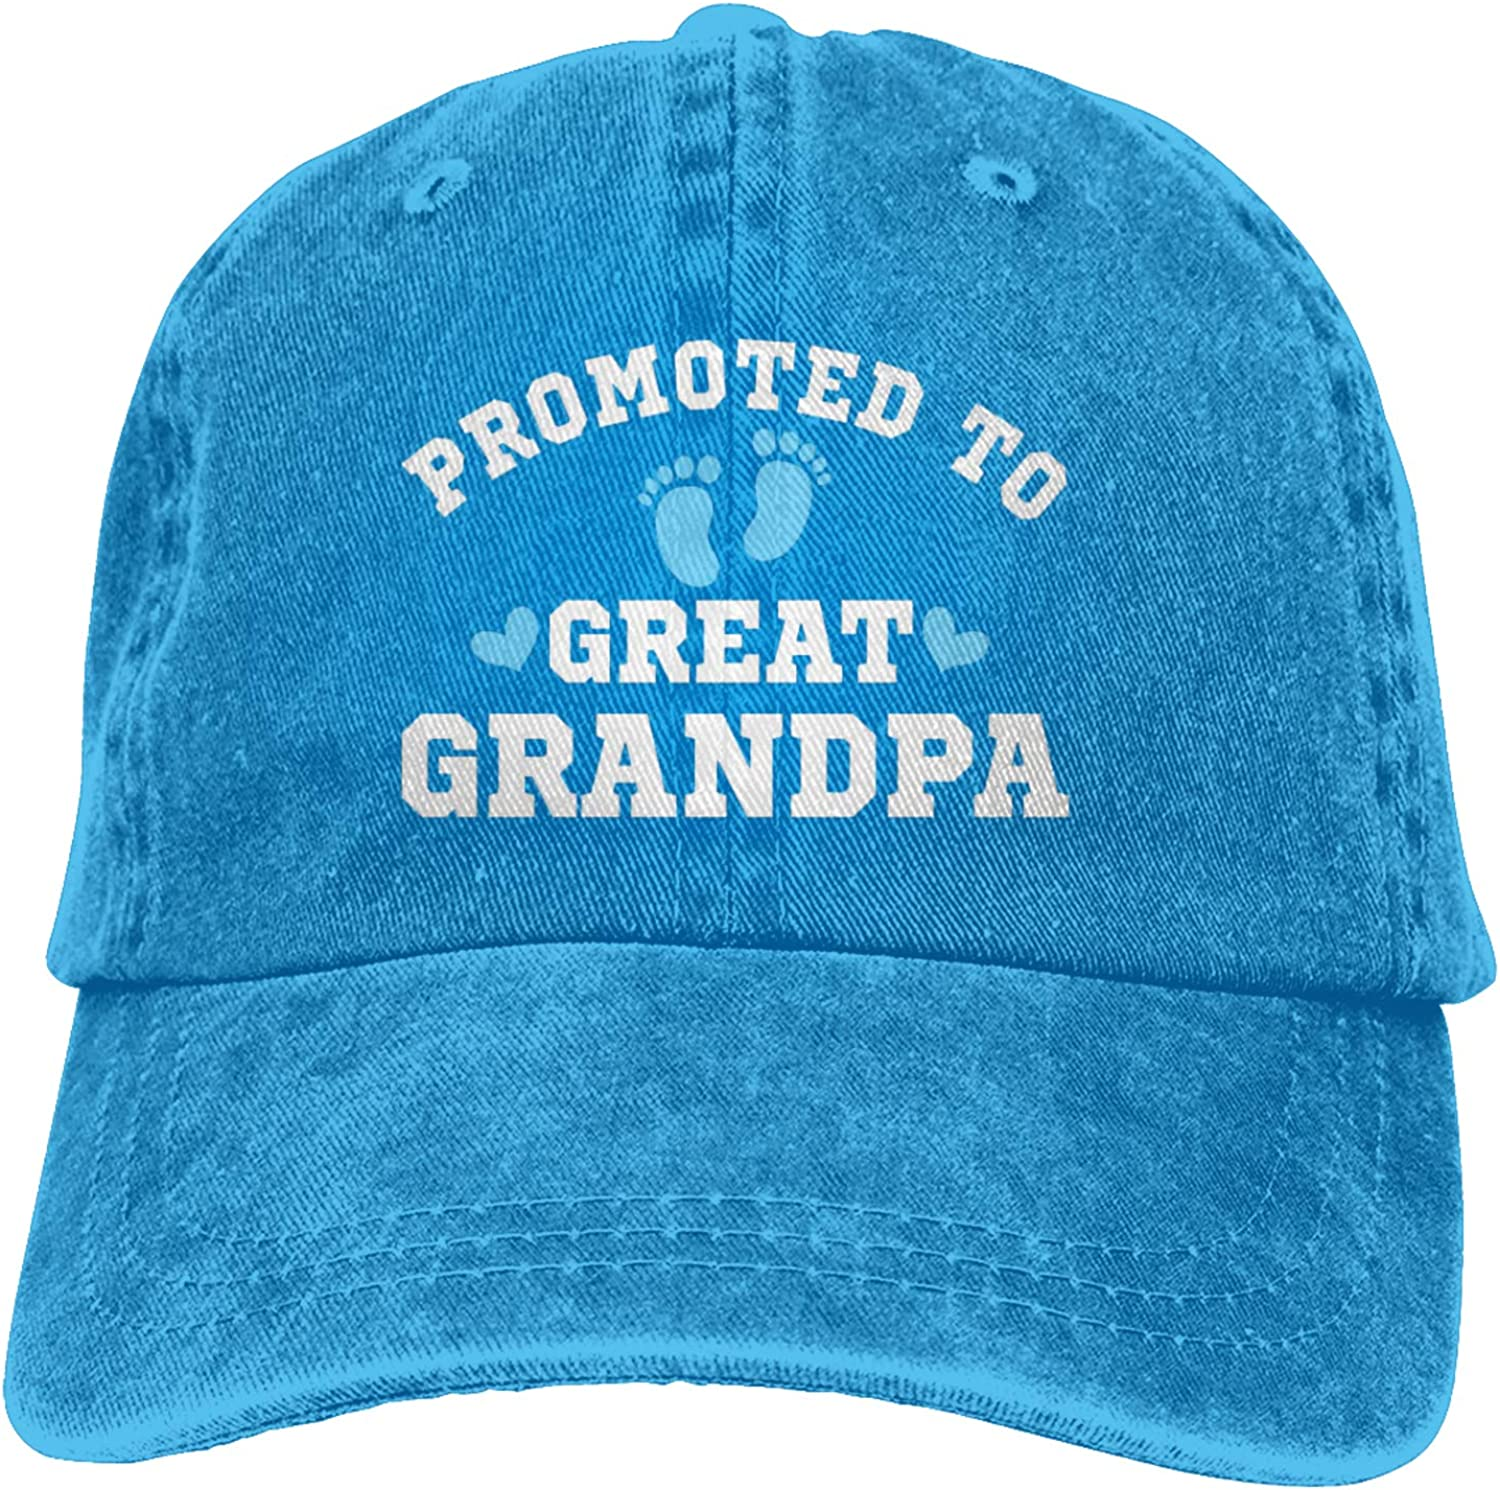 Promoted to Great Grandpa Baseball Cap Unisex Vintage Trucker Hat Adjustable Cowboy Hats for Mens Womens